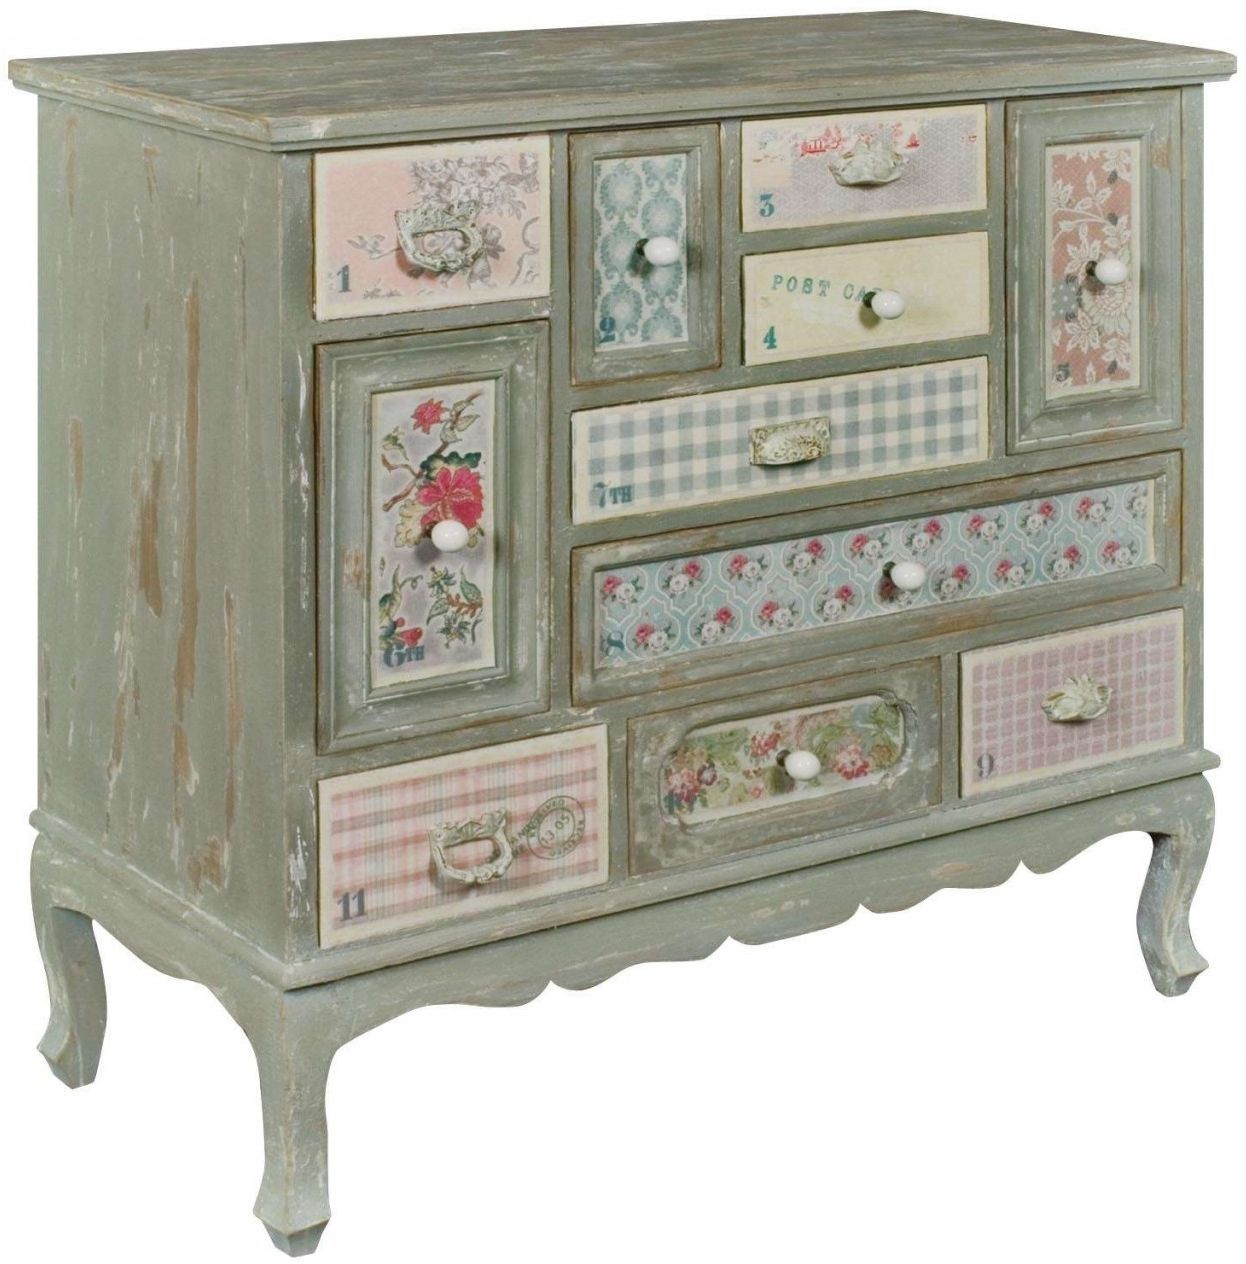 Shabby Chic Furniture: Shabby Chic Patchwork Chest Of Drawer